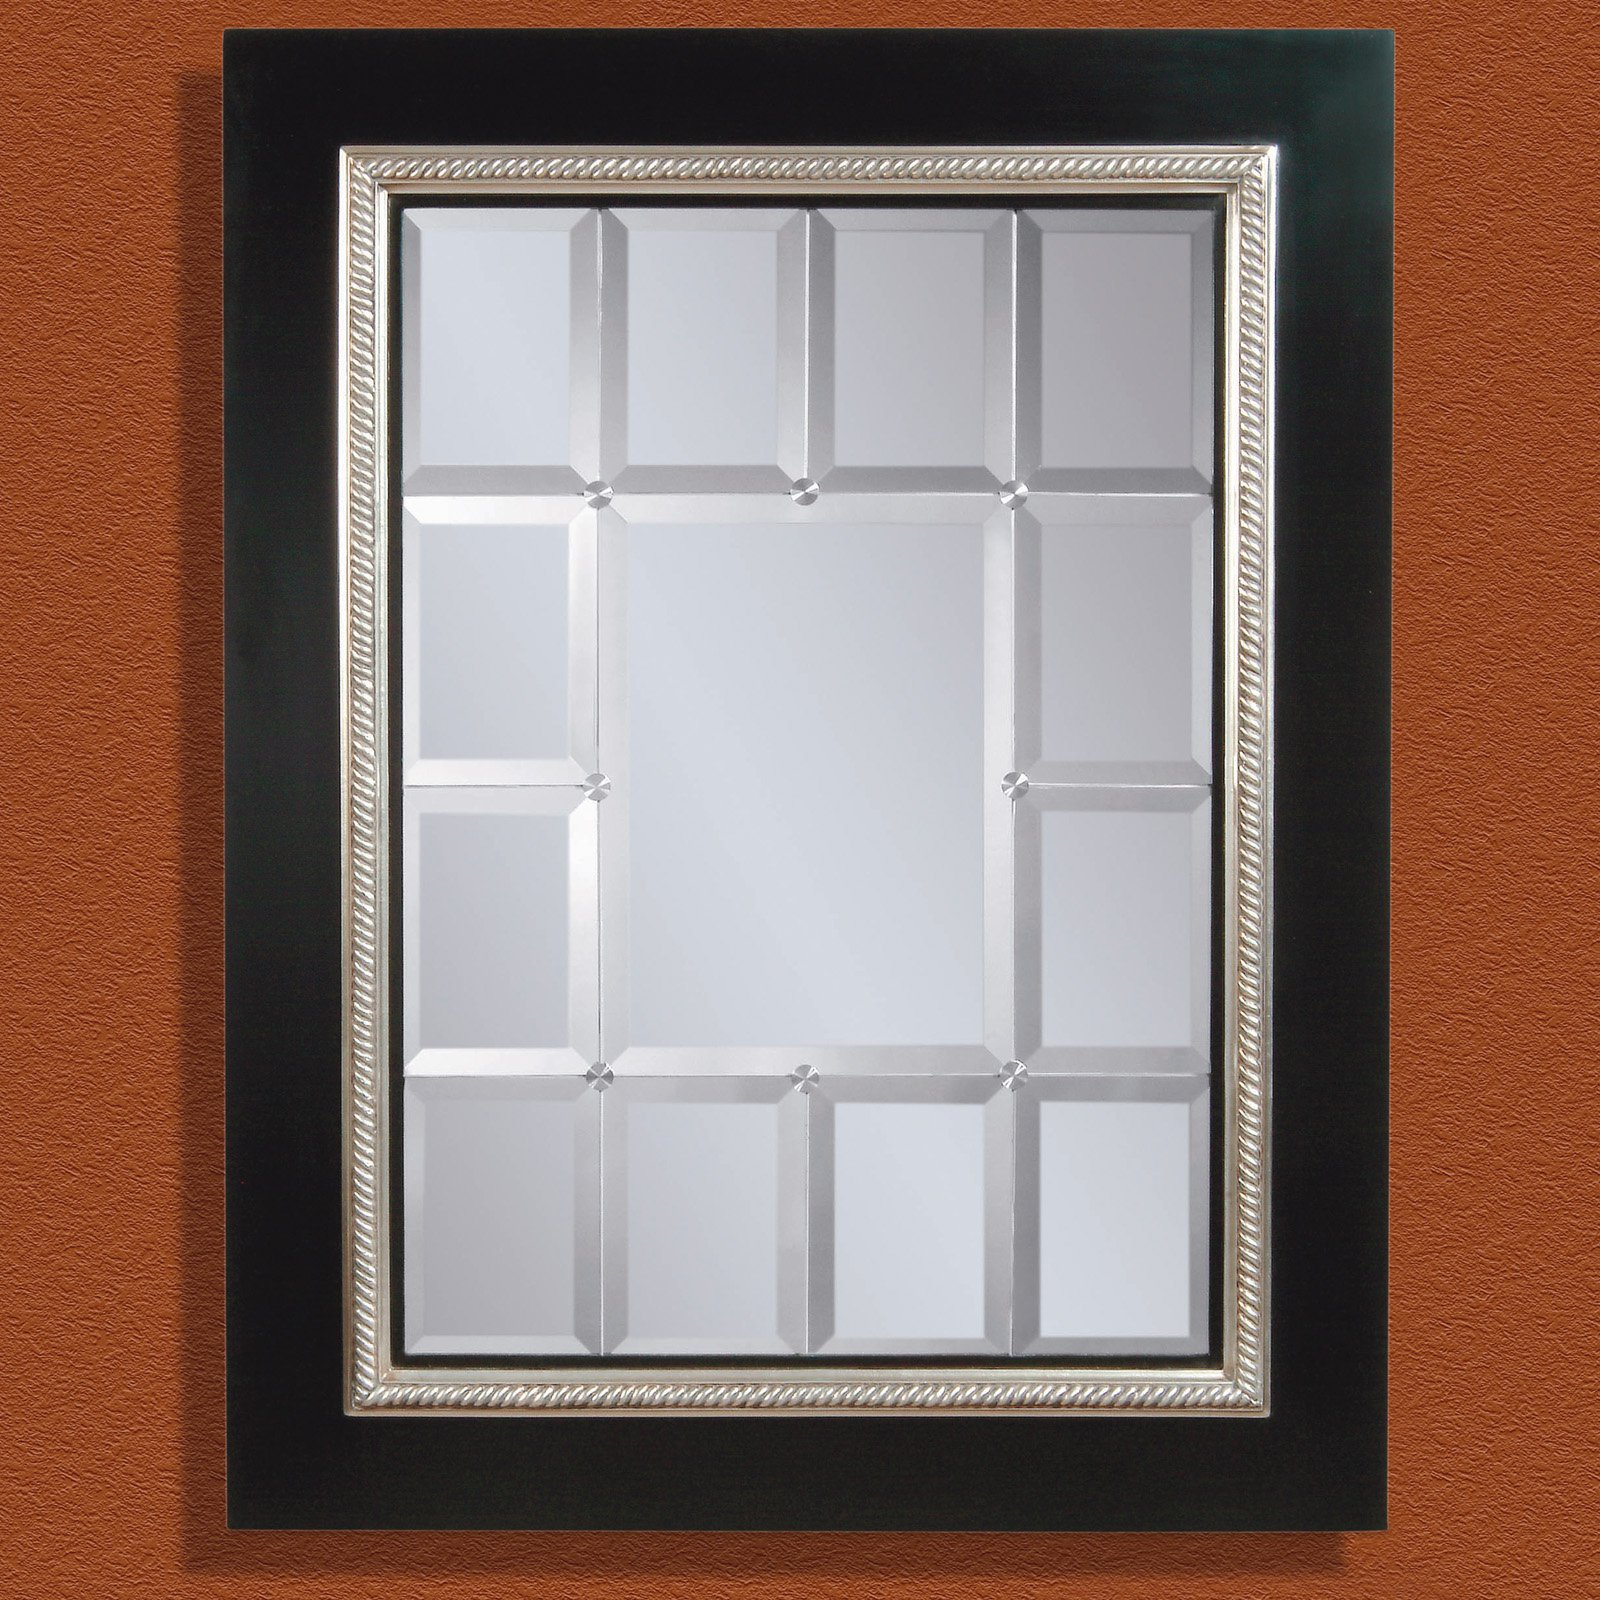 Fiona Wall Mirror - 42W x 54H in.